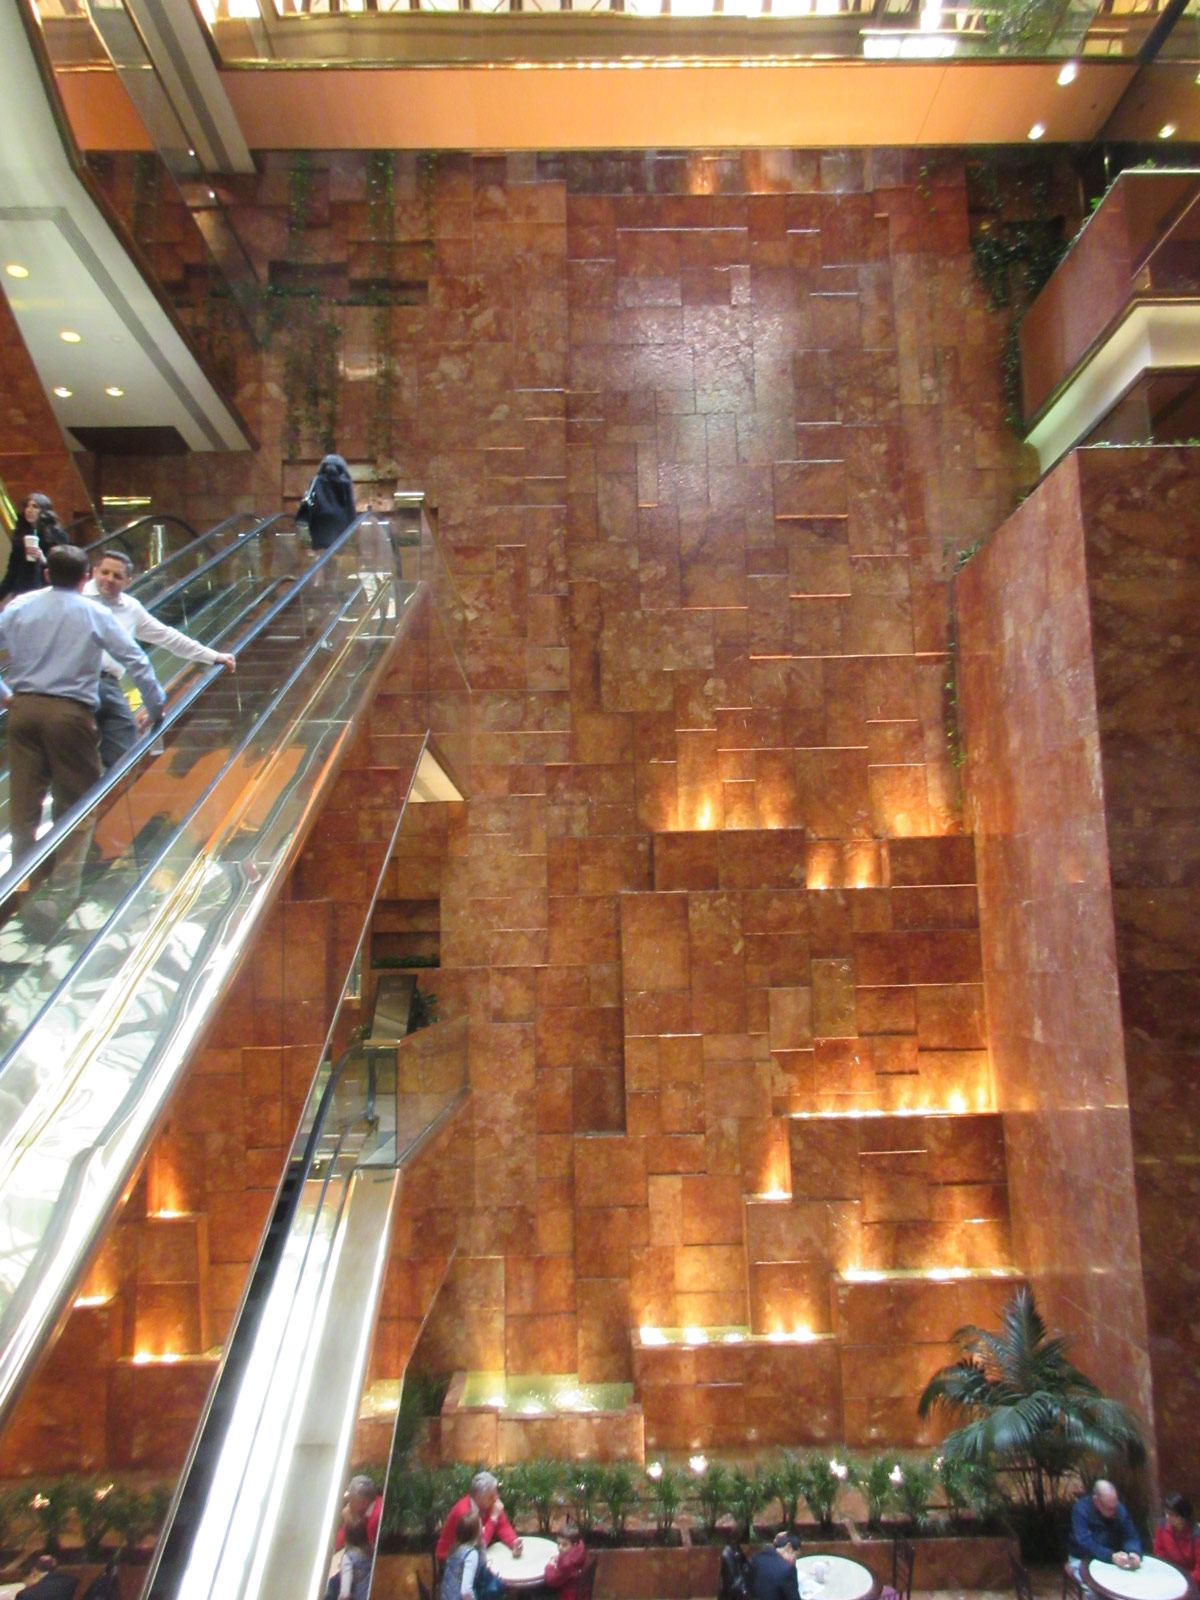 Paul Goldberger once praised the escalator- and waterfall-lined atrium of the Trump Tower. Inside the atrium are several eateries, including the Trump Bar, Trump Grill, Trump Cafe, and Trump's Ice Cream Parlor. (William Menking)